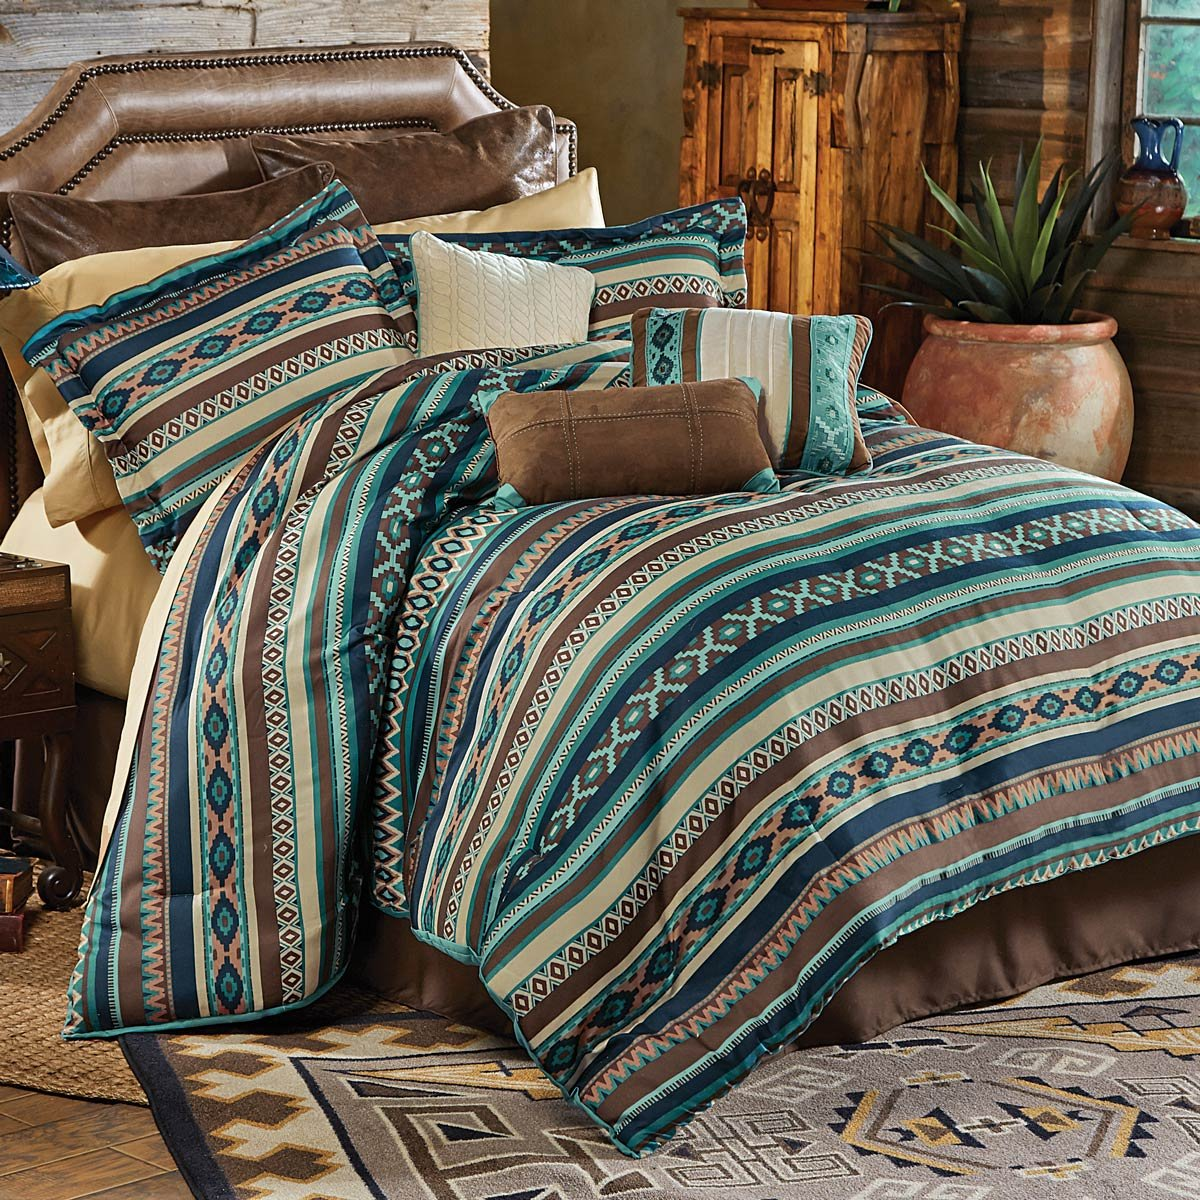 Amazoncom Turquoise River Southwestern Bed Set Queen